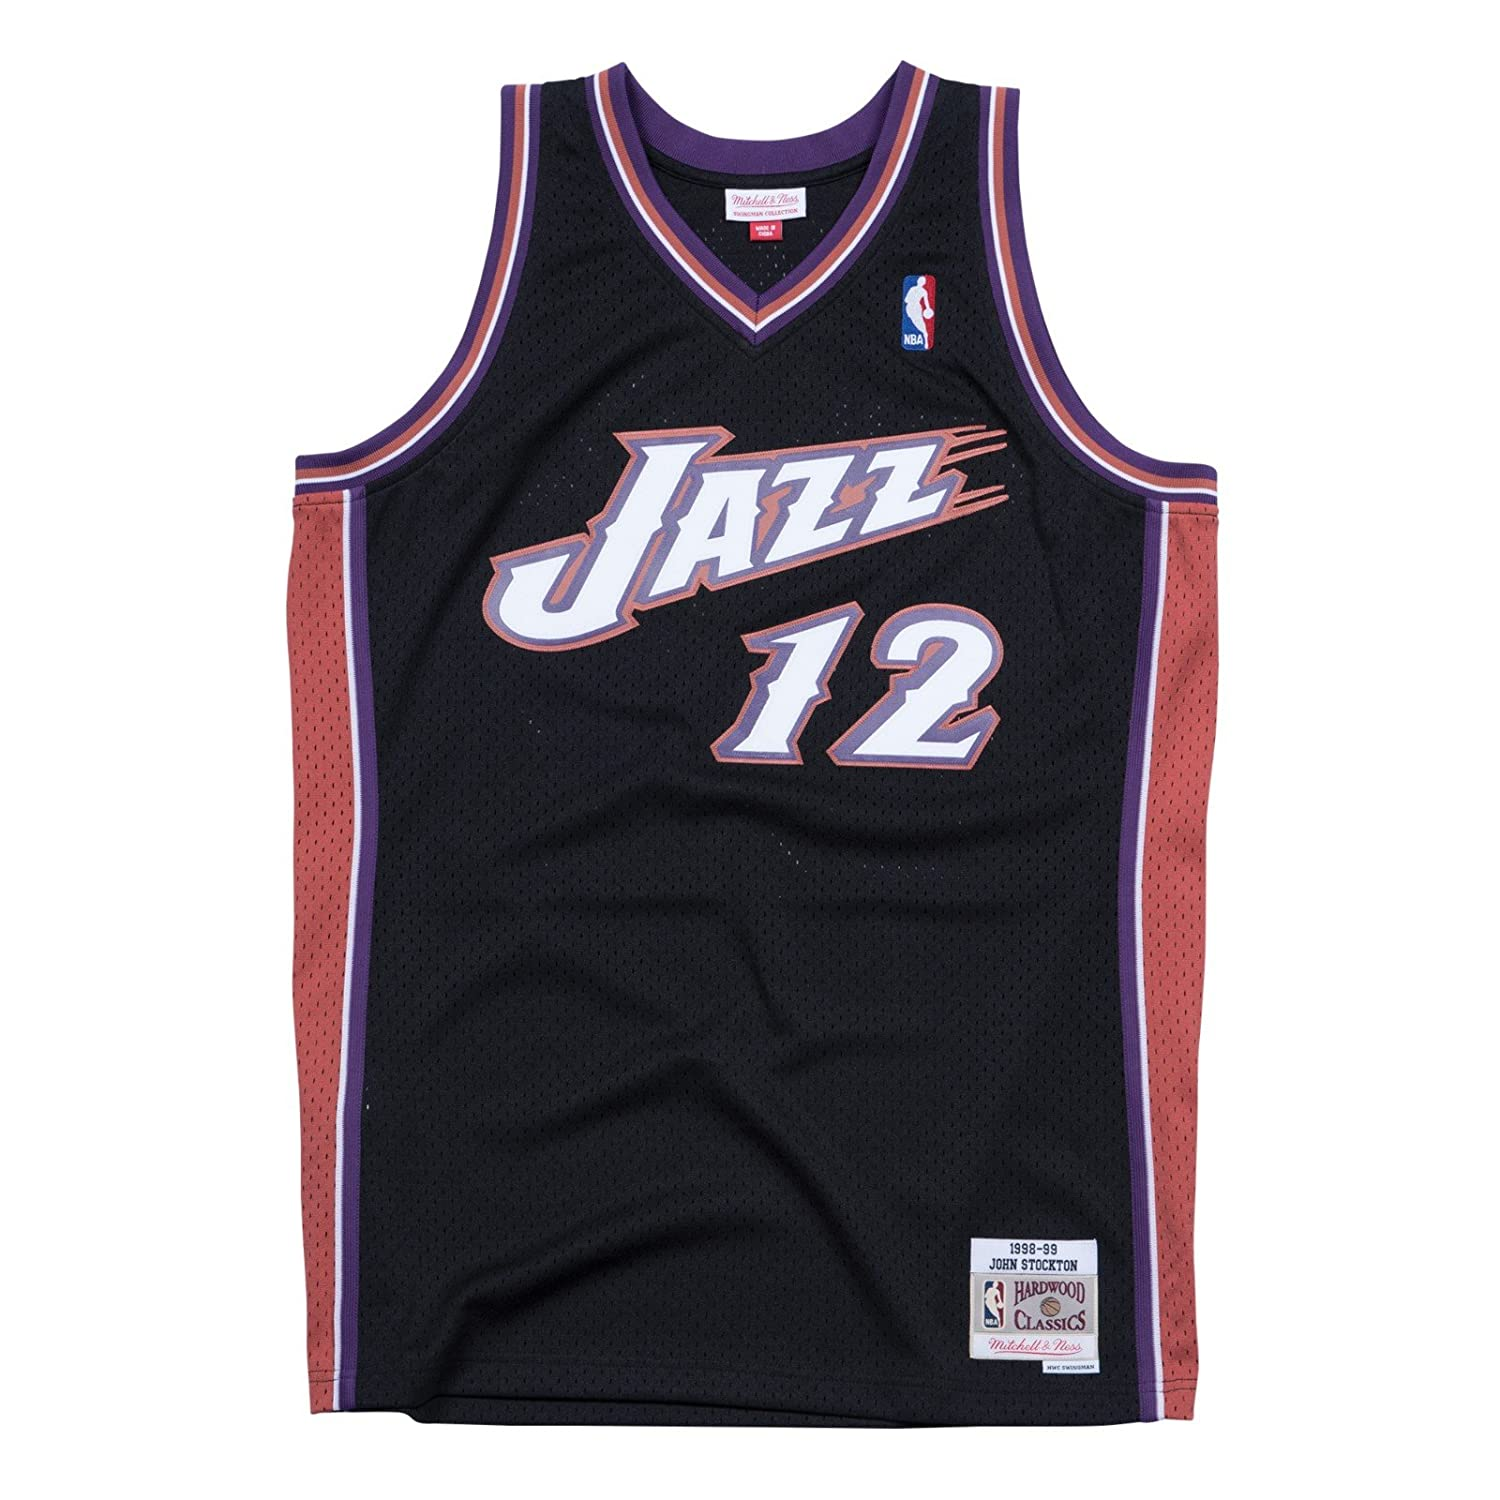 8509b84c Amazon.com : Mitchell & Ness Utah Jazz John Stockton Swingman Jersey NBA  Throwback Black : Sports & Outdoors